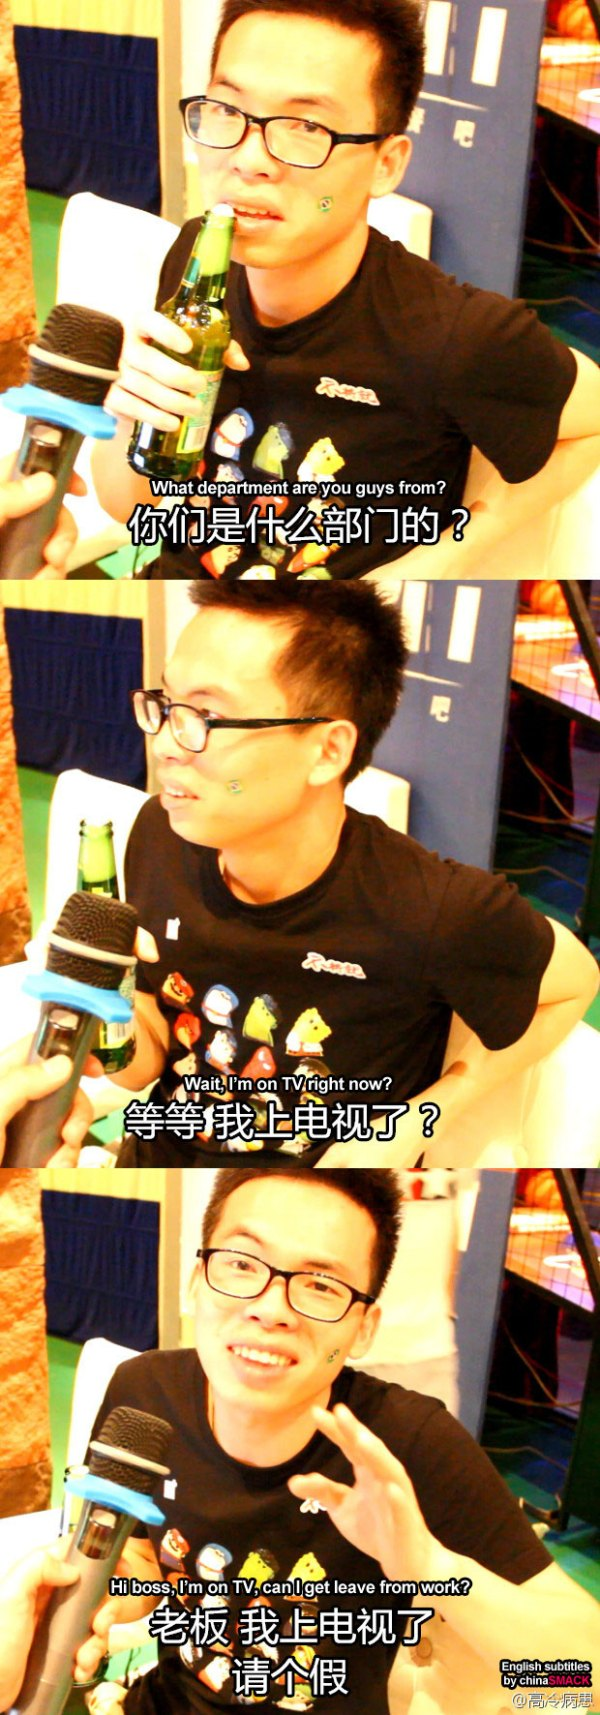 chinese-netizen-excuses-for-bosses-wives-to-watch-world-cup-07-on-tv-english-subtitles